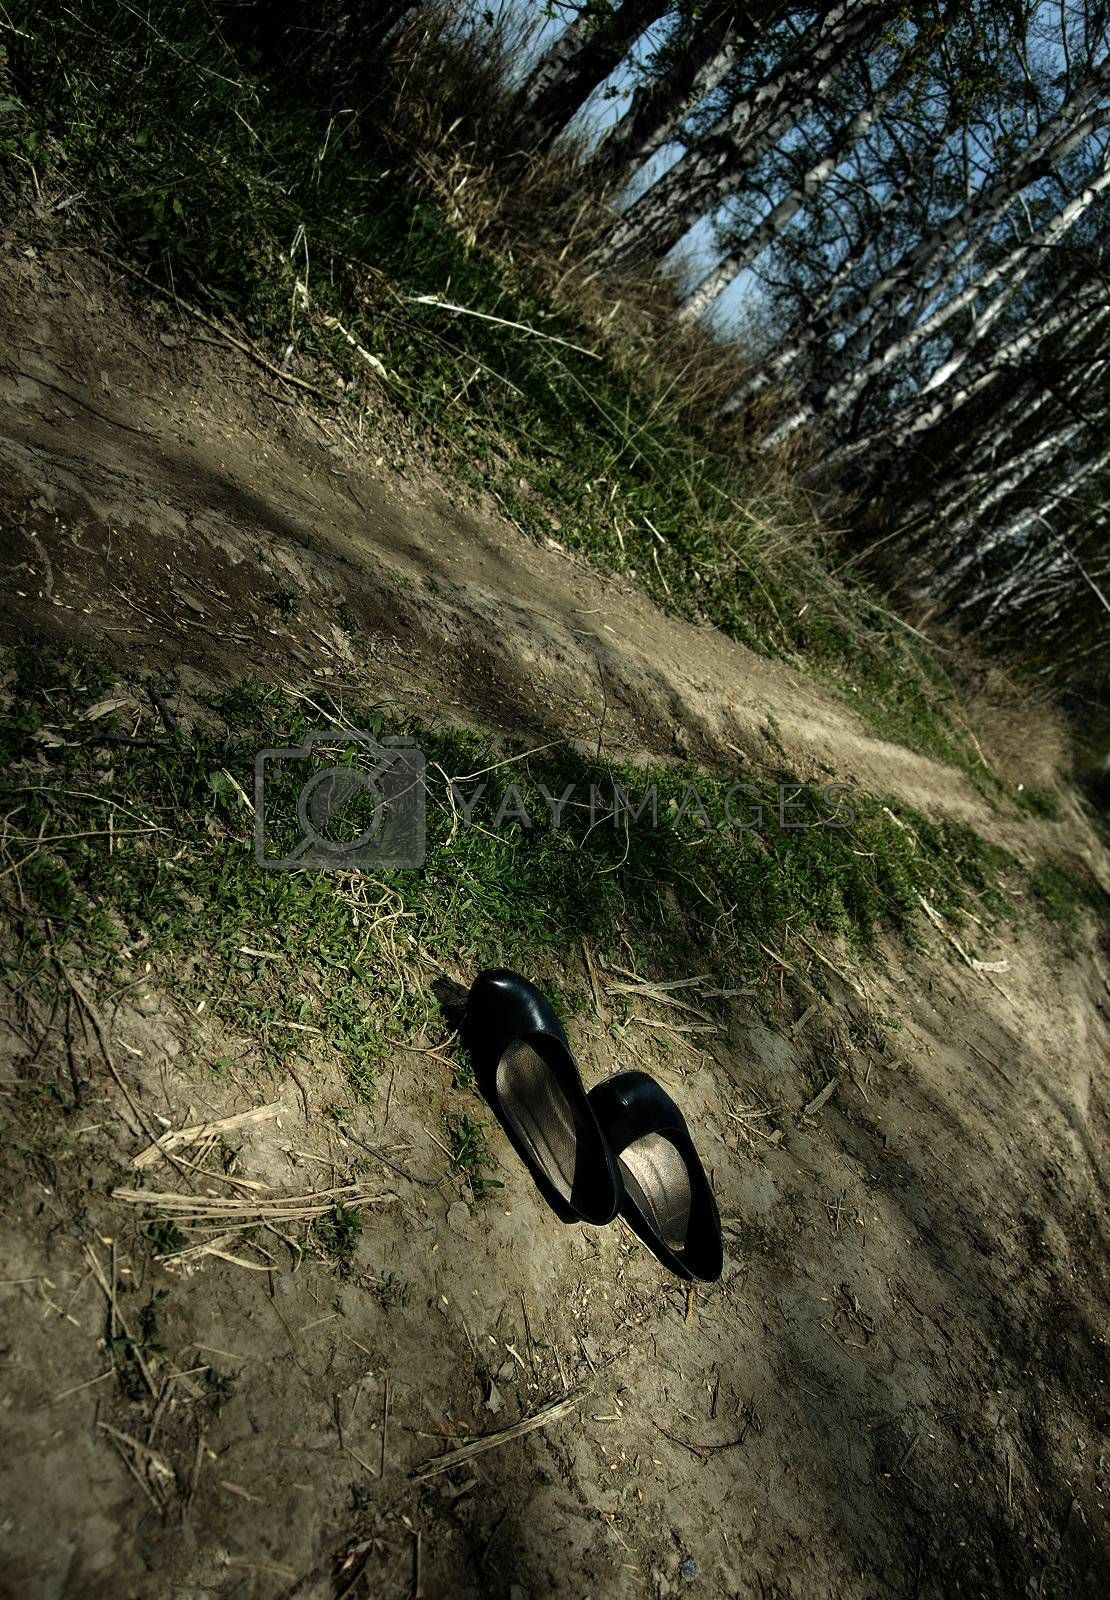 Photo of the lost old shoes on the forest pathway